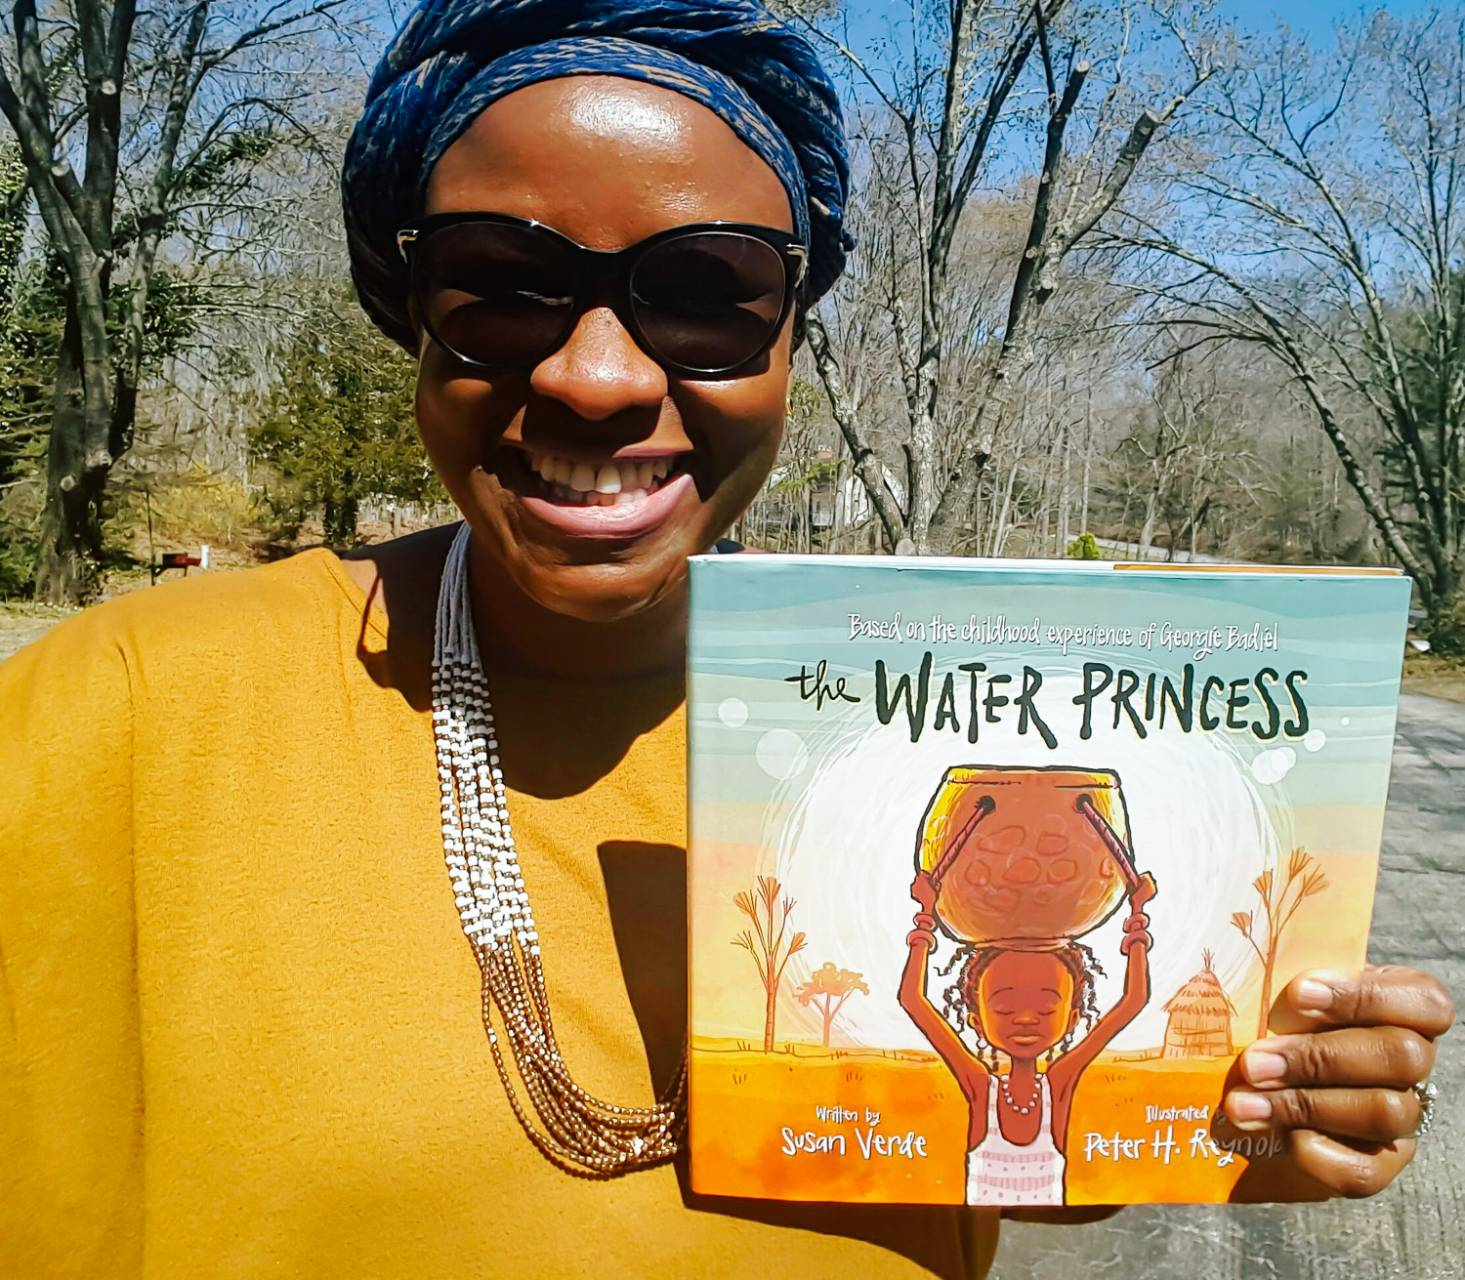 Water Princess is one of the many diverse children's books that Atlas Book Club offers to kids!